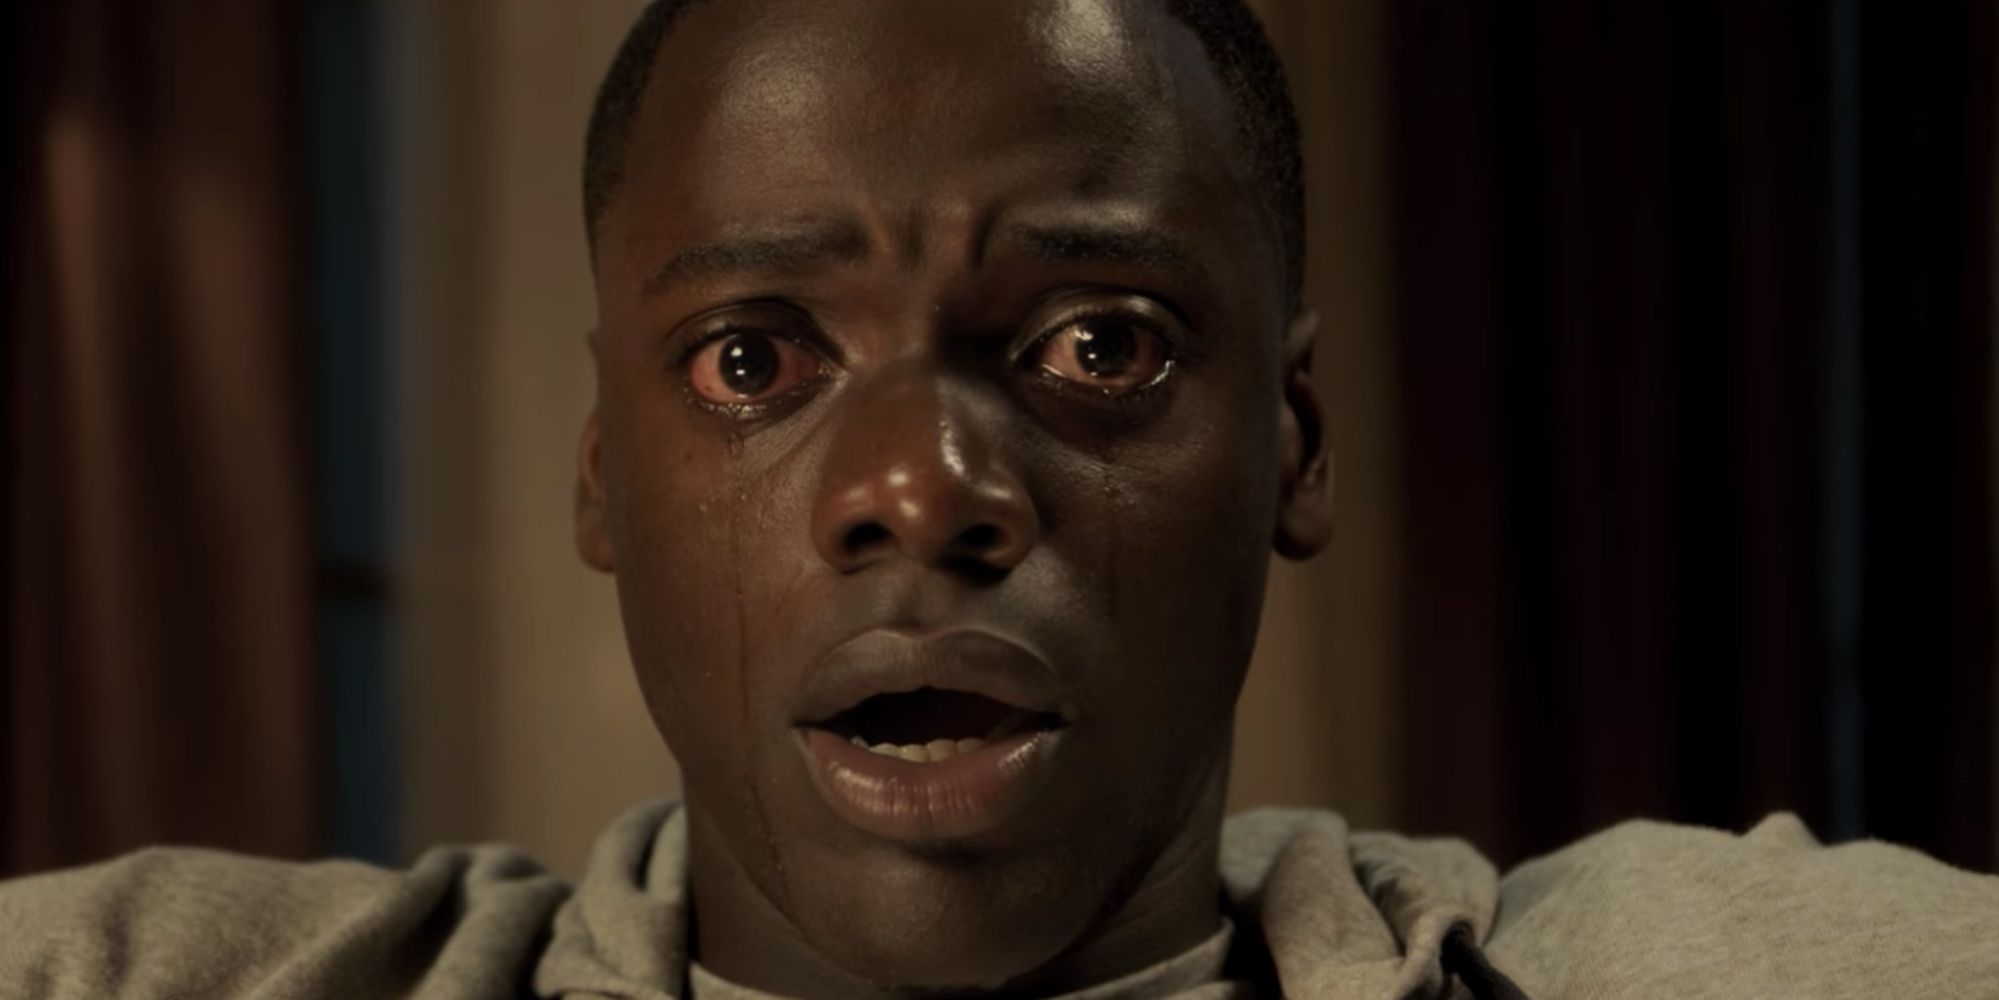 'Get Out' Thrills Its Way To No. 1 At The Box Office With $30.5 Million Debut